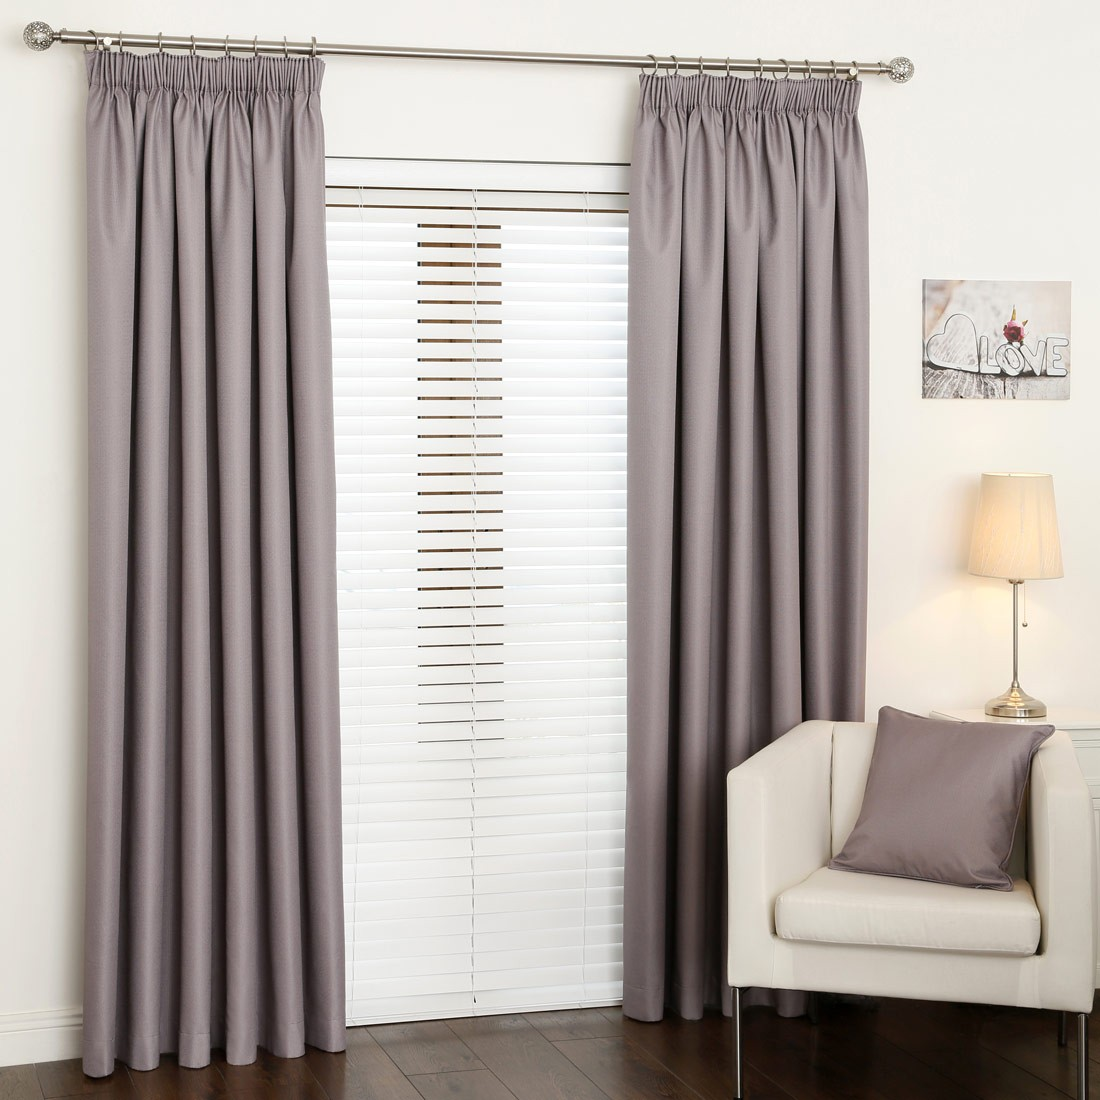 Cheap Blackout Curtains for Inspiring Home Decorating Ideas: Cheap Blackout Curtains | Cheap Window Treatments | Blackout Curtains For Sale